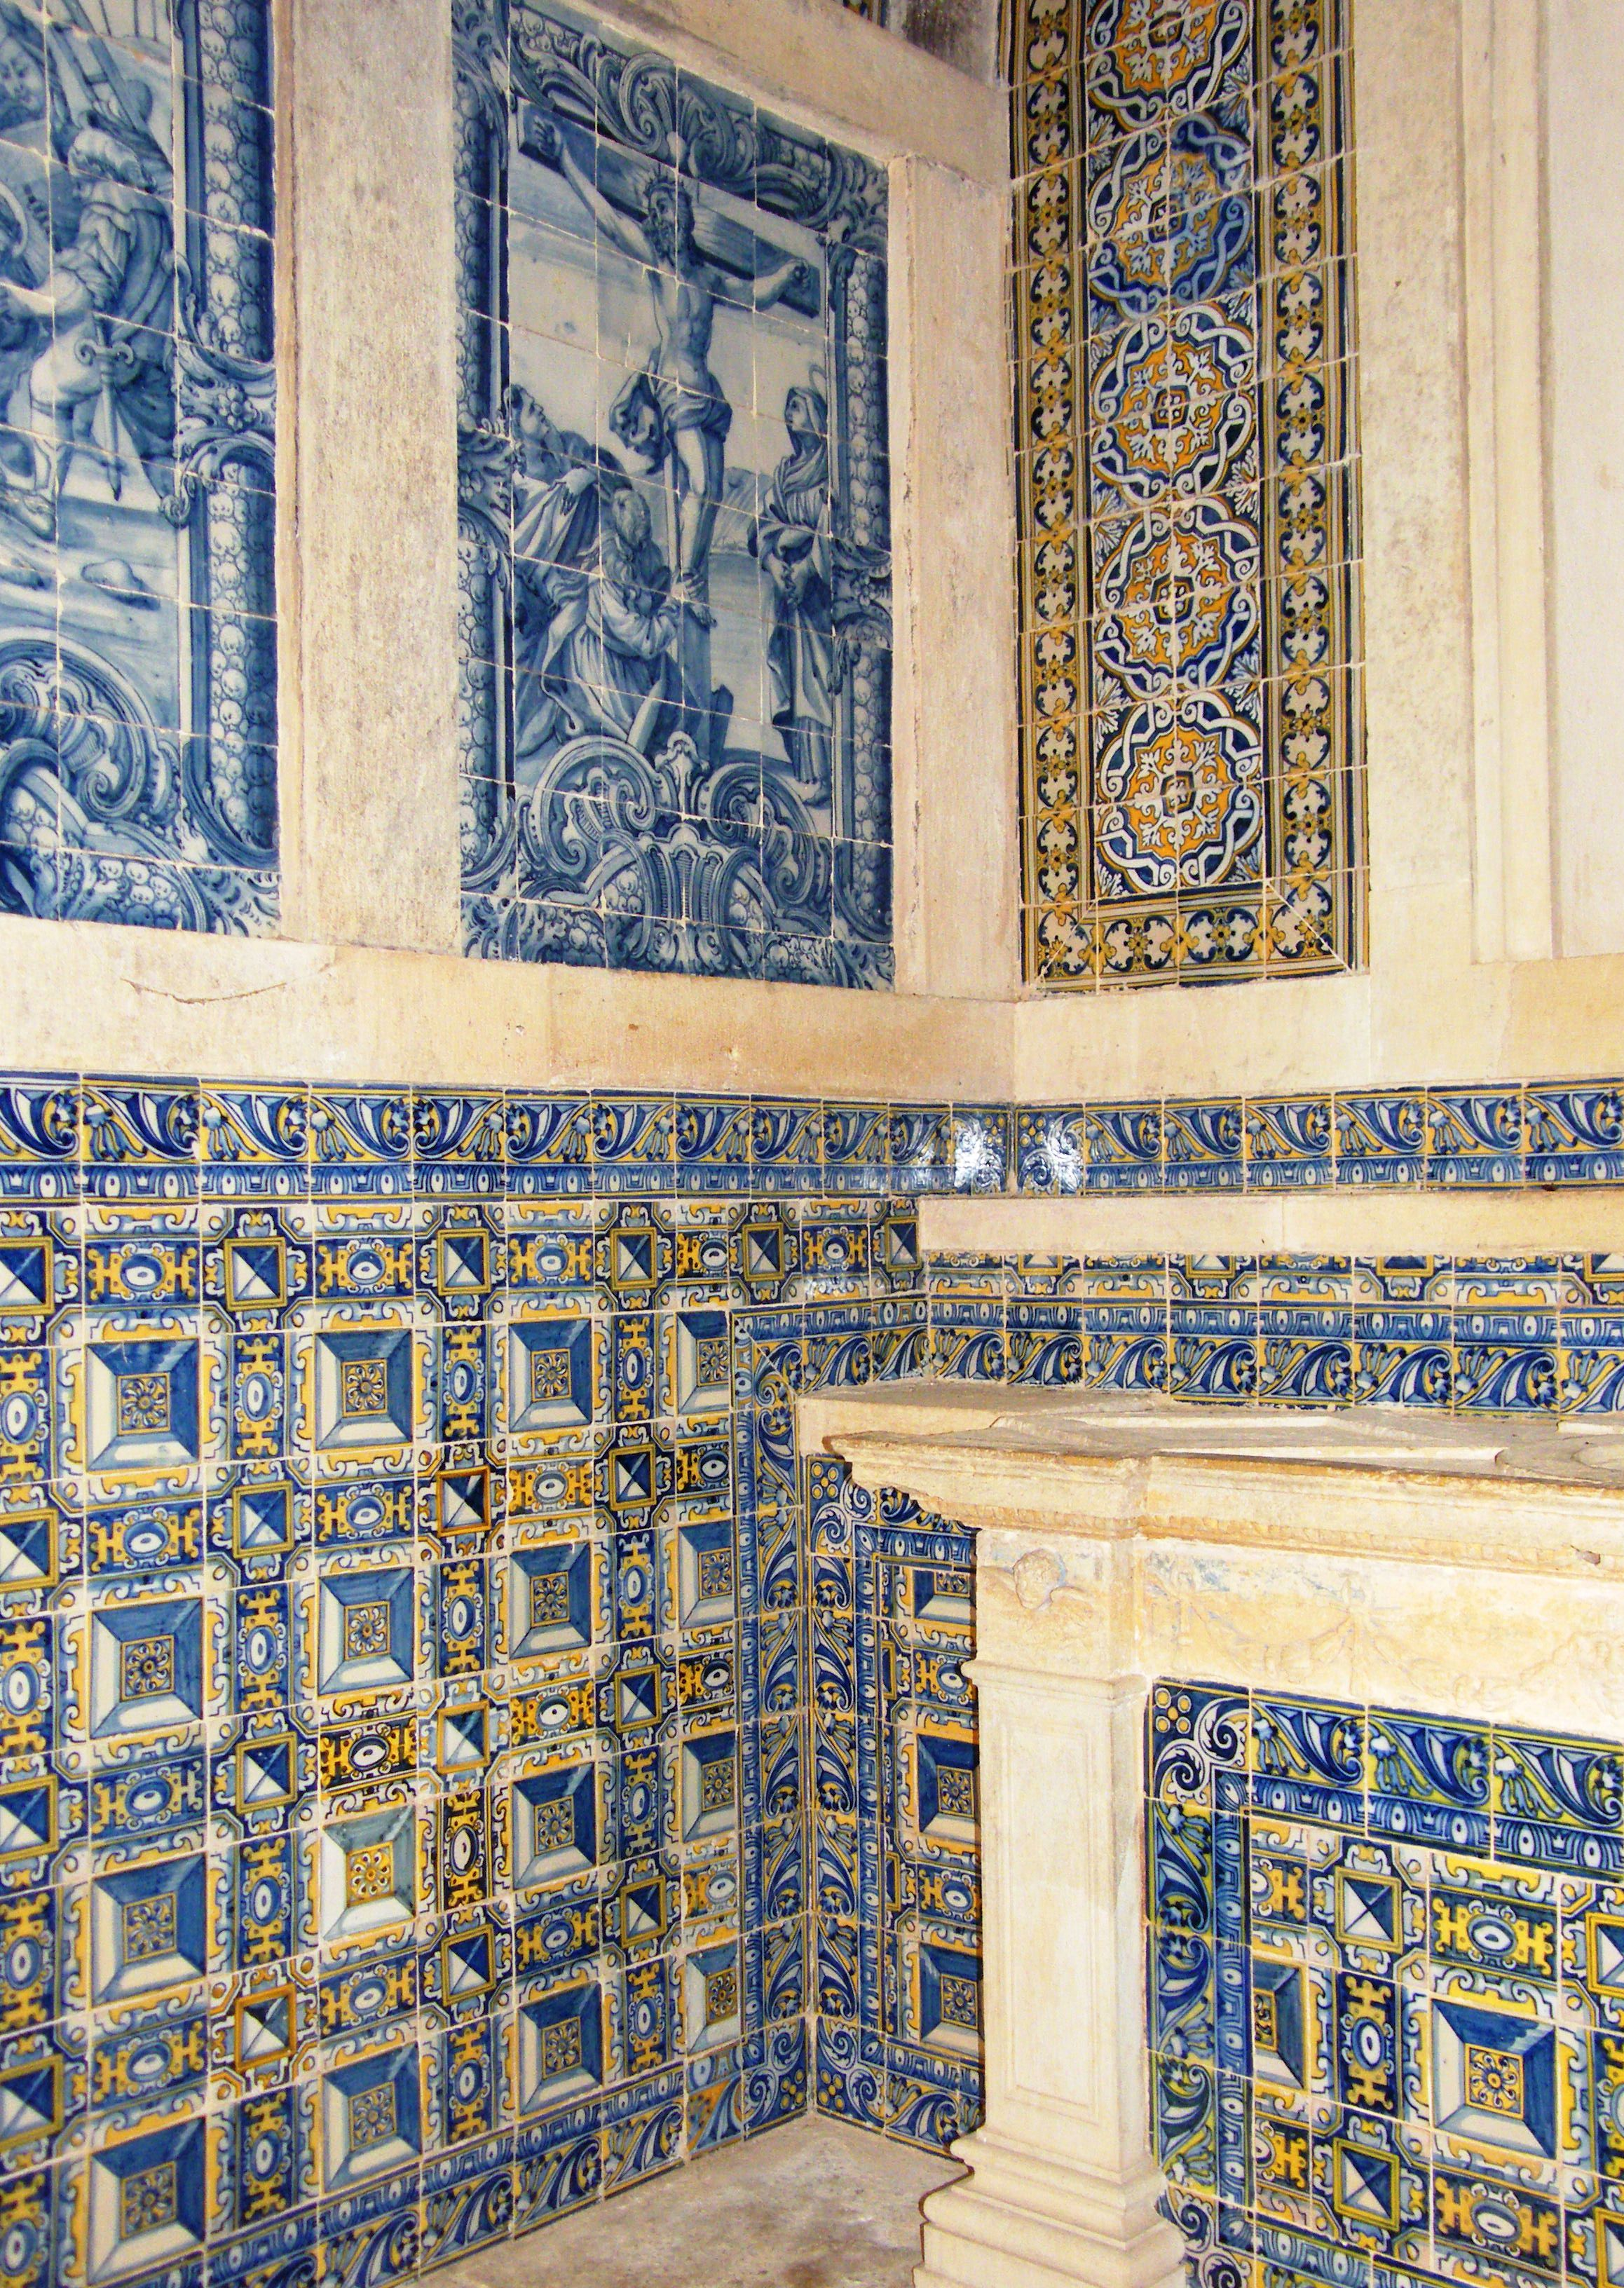 Chapel of Antonio Portacarreiro in the Convento do Cristo with late 17th century polychrome and early 18th century blue-and-white tiles